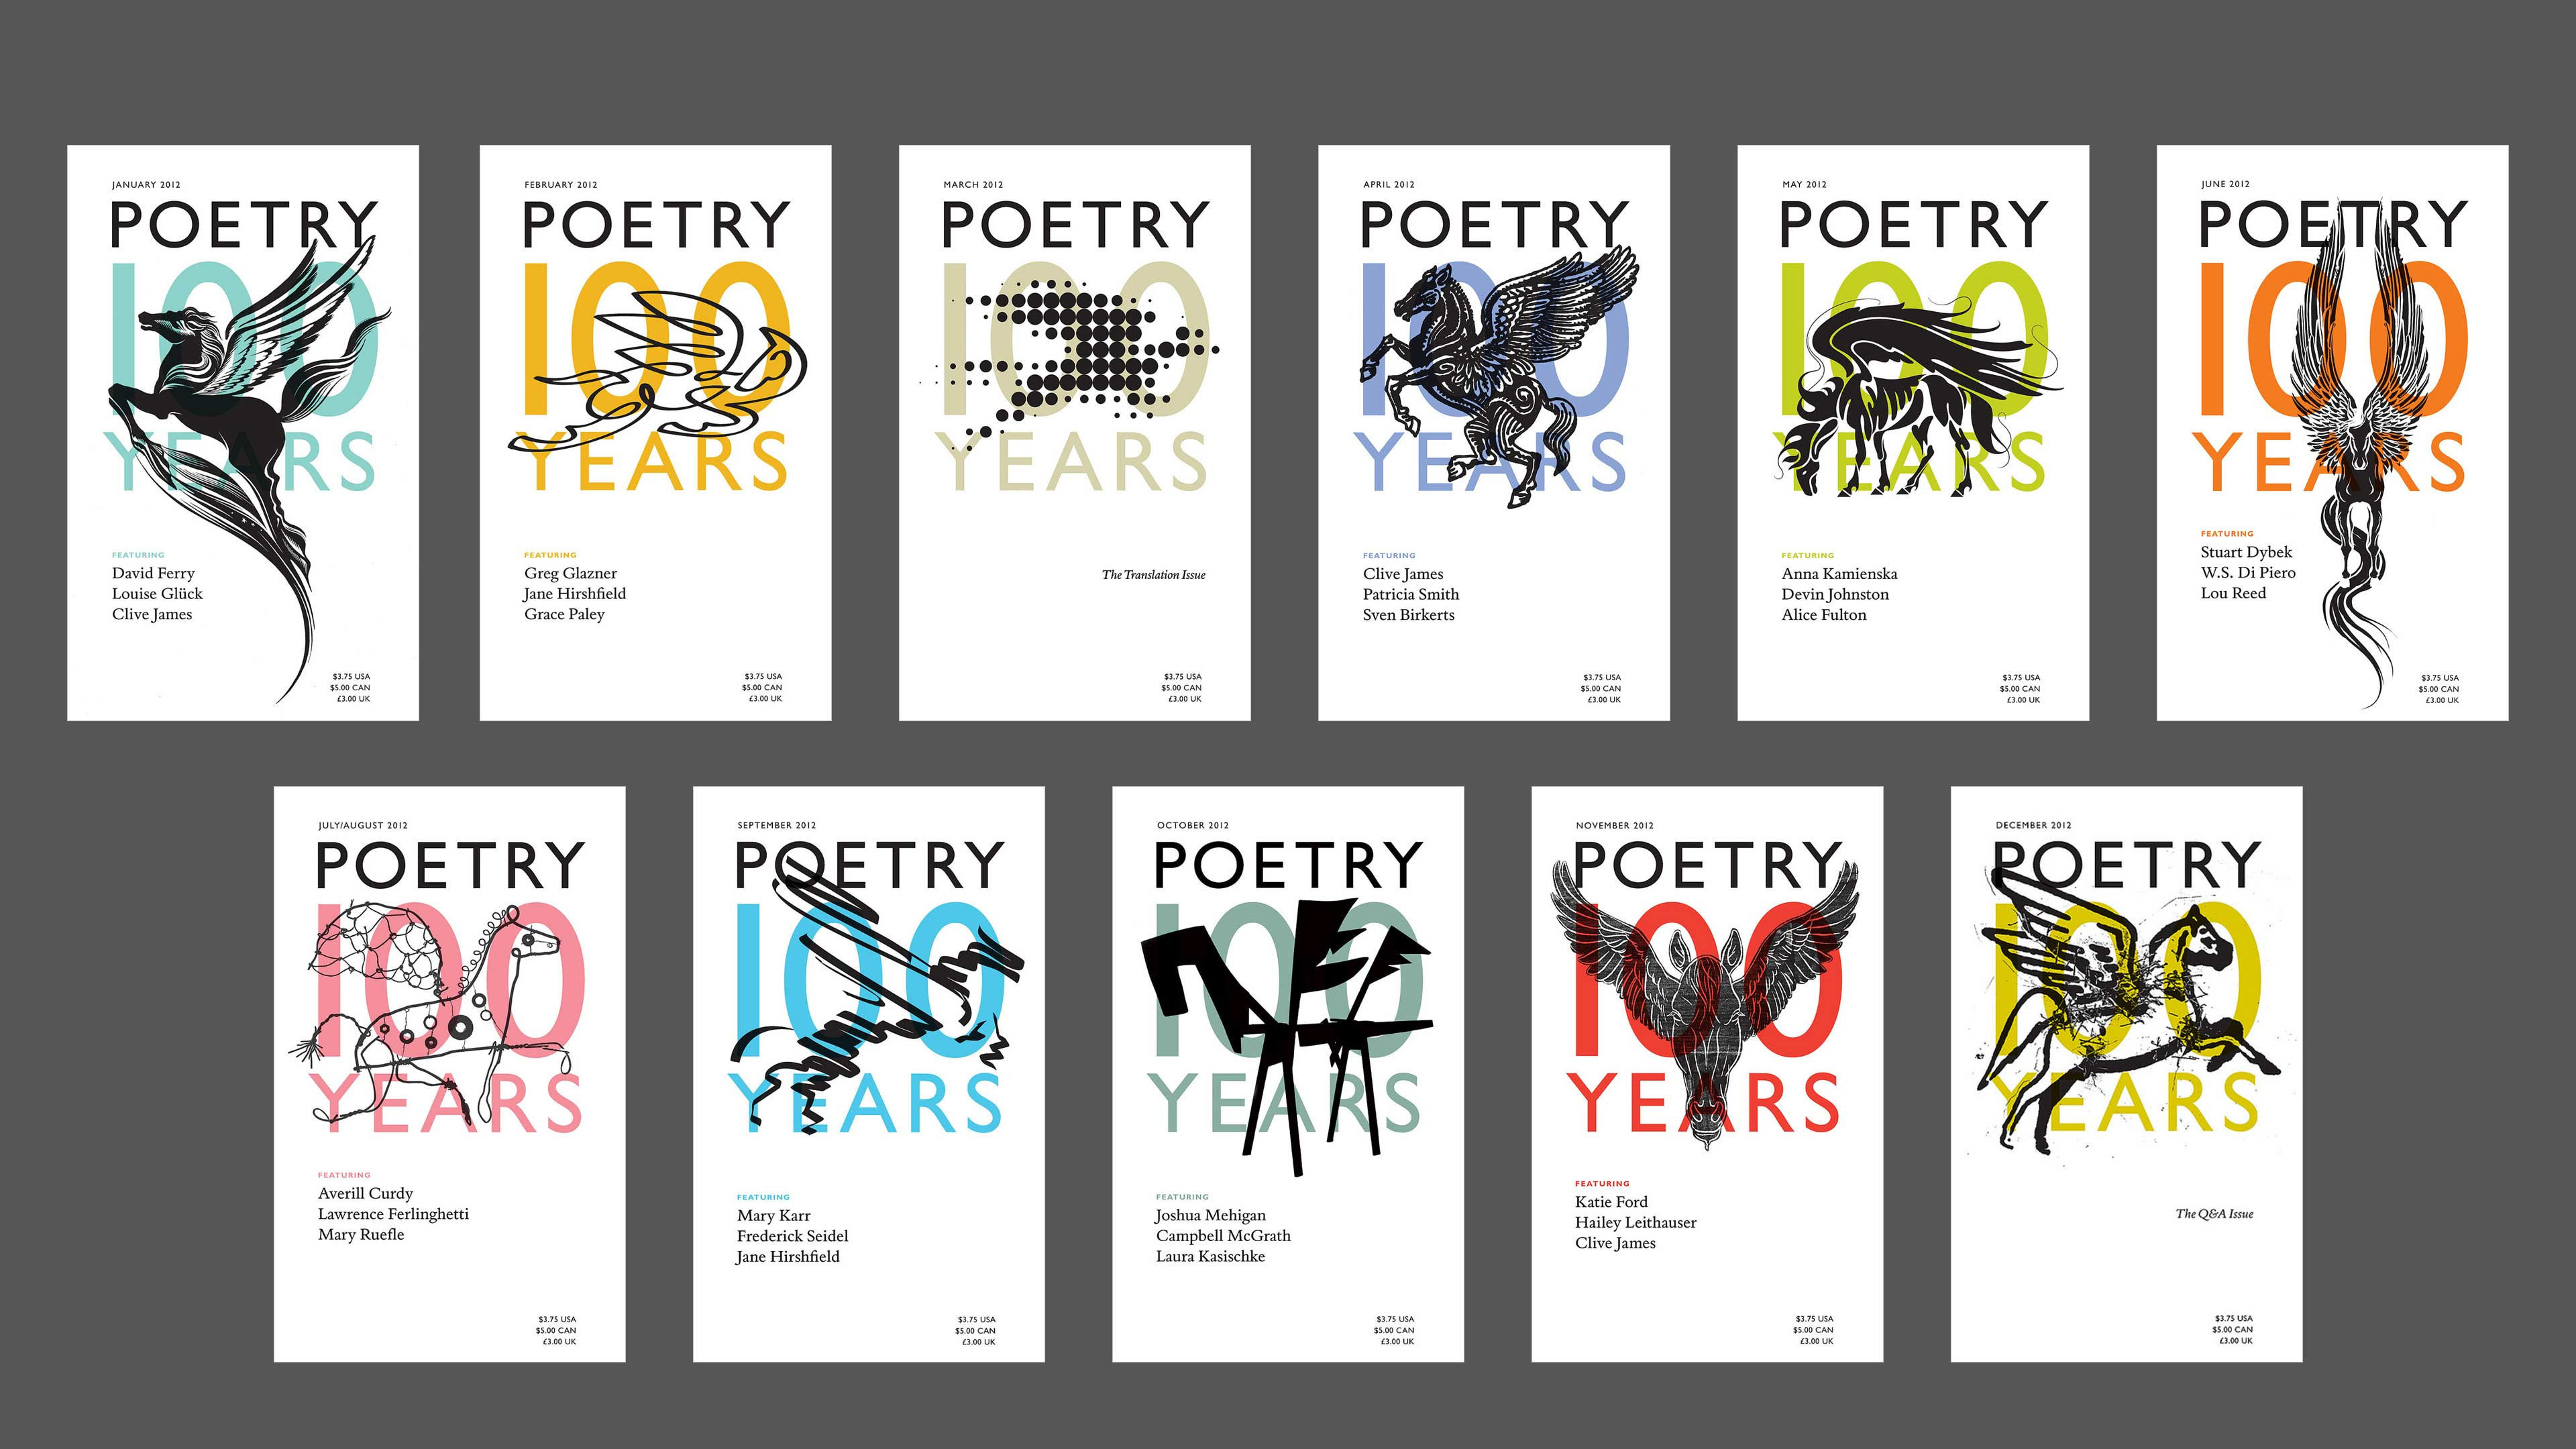 Poetry magazine's 100th Anniversary cover designs